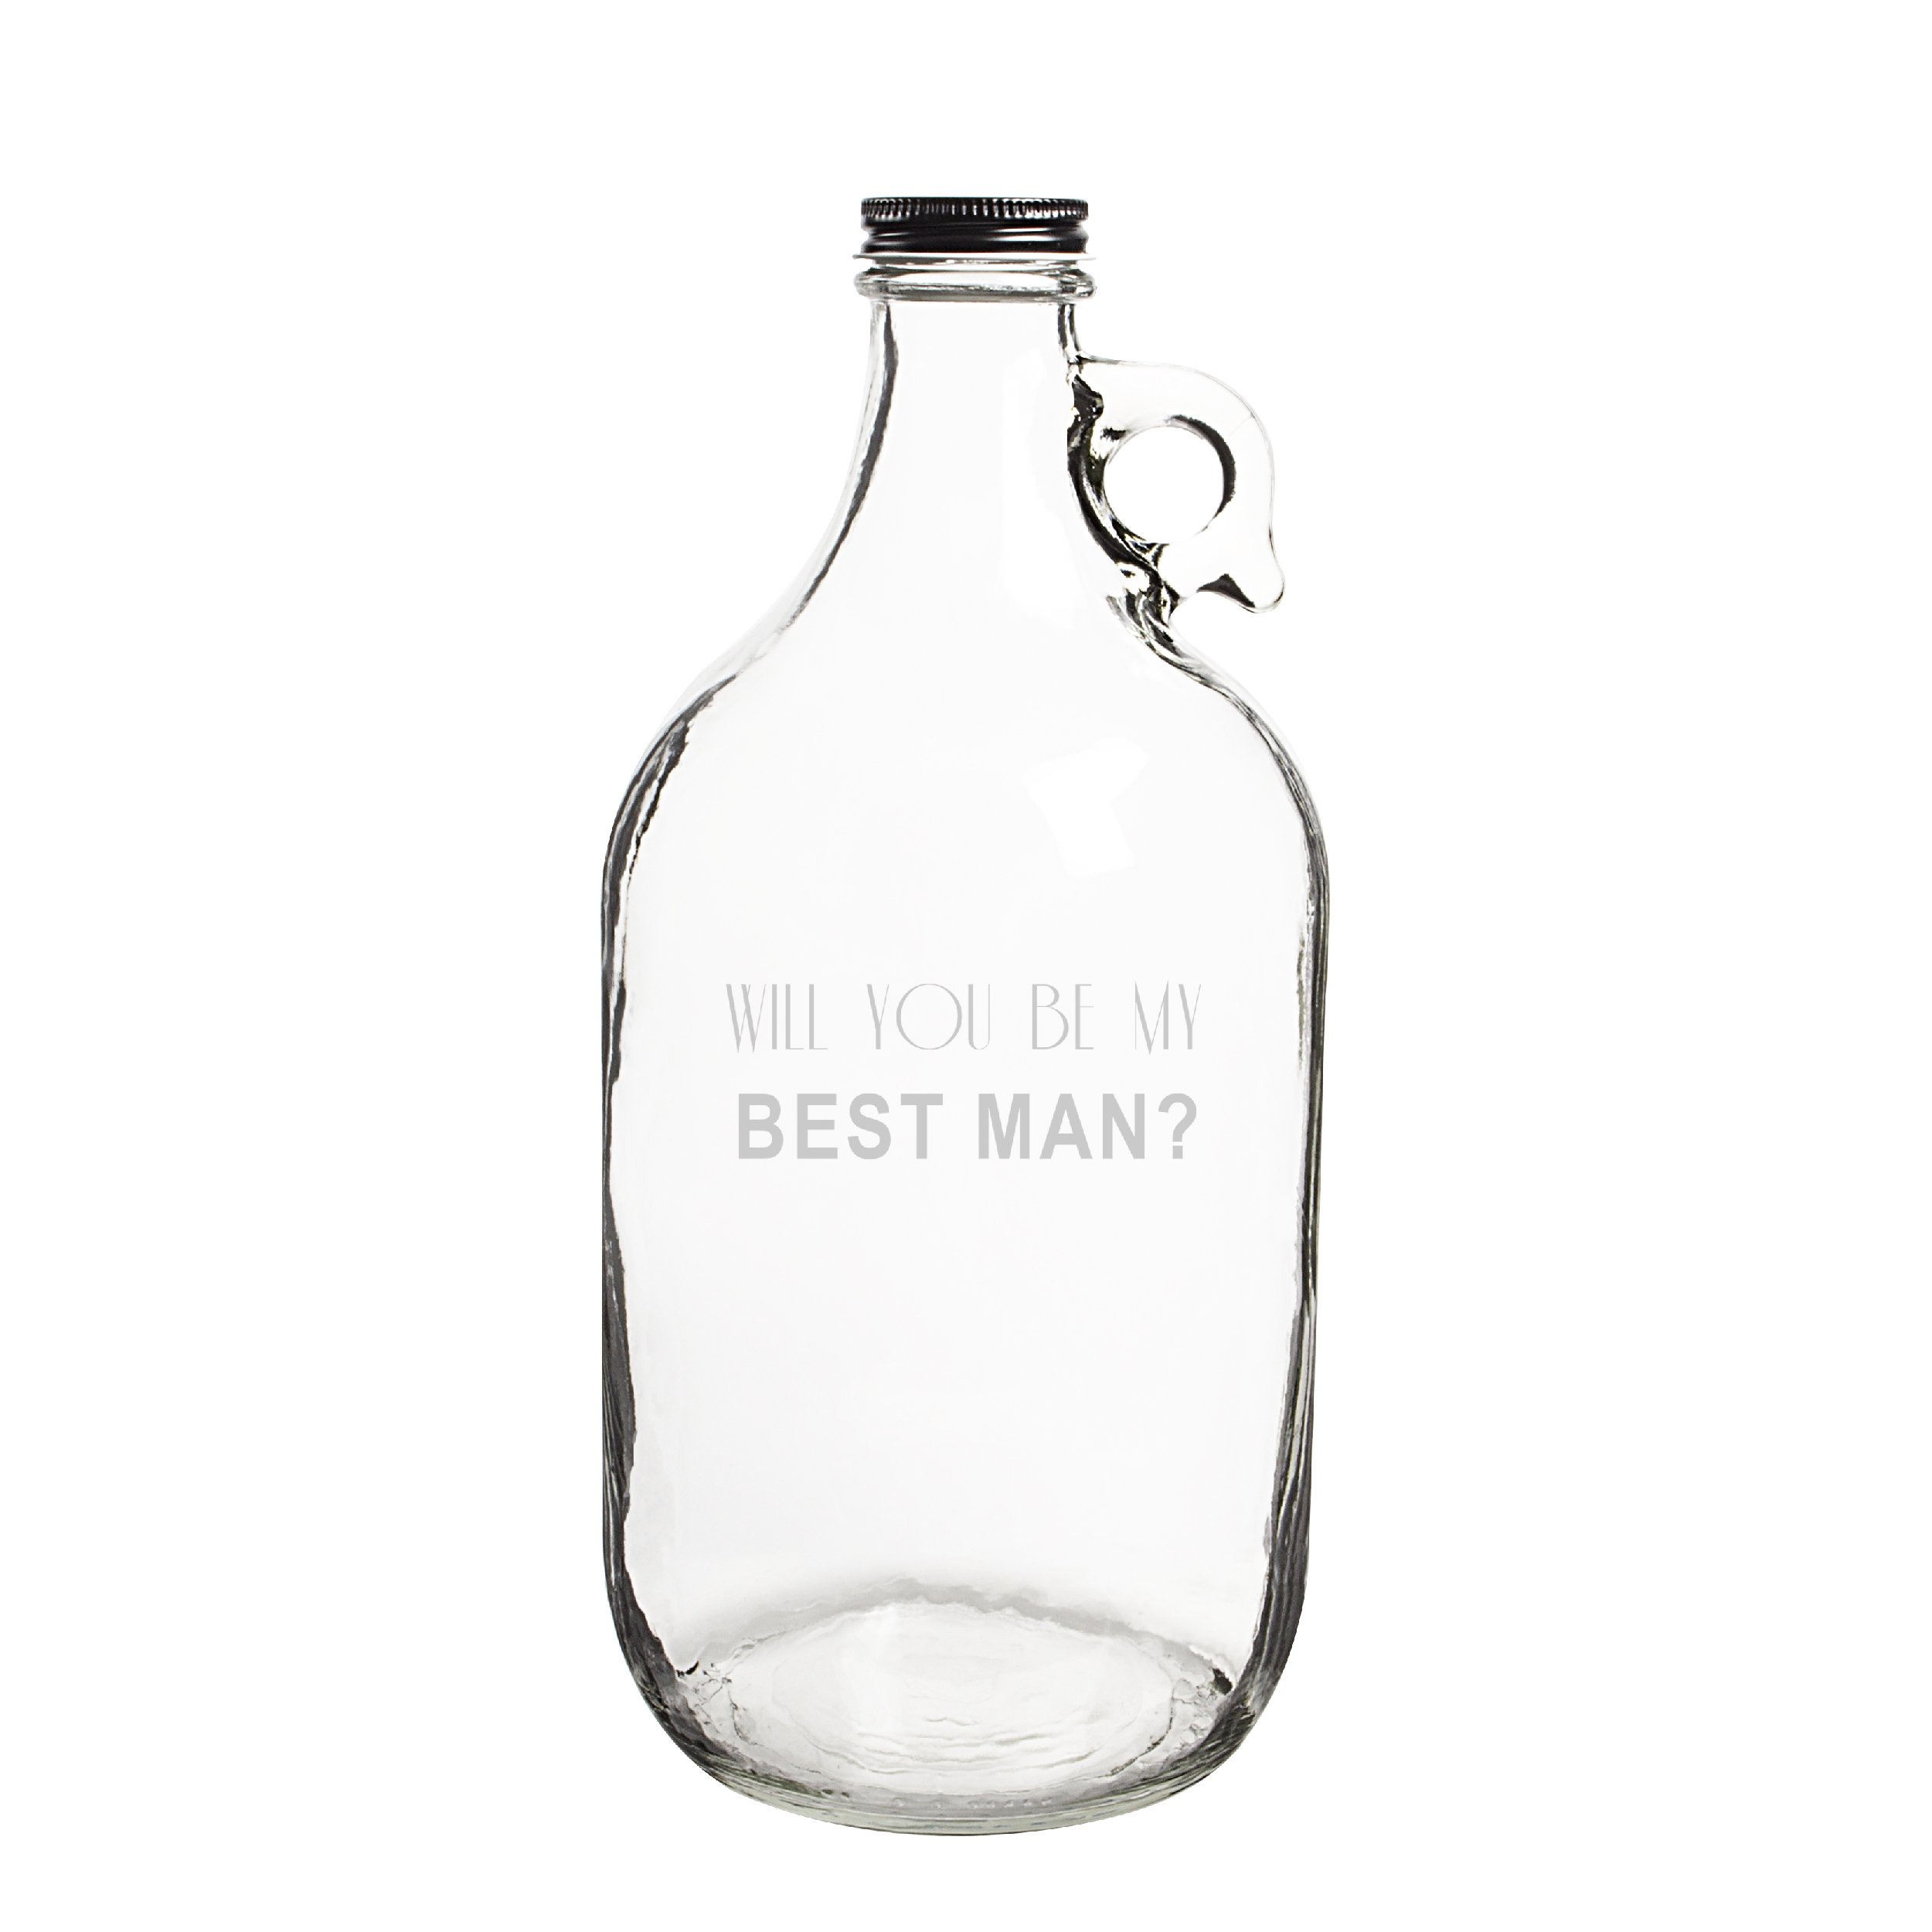 Cathy's Concepts Will You Be My Best Man? Craft Beer Growler, Clear